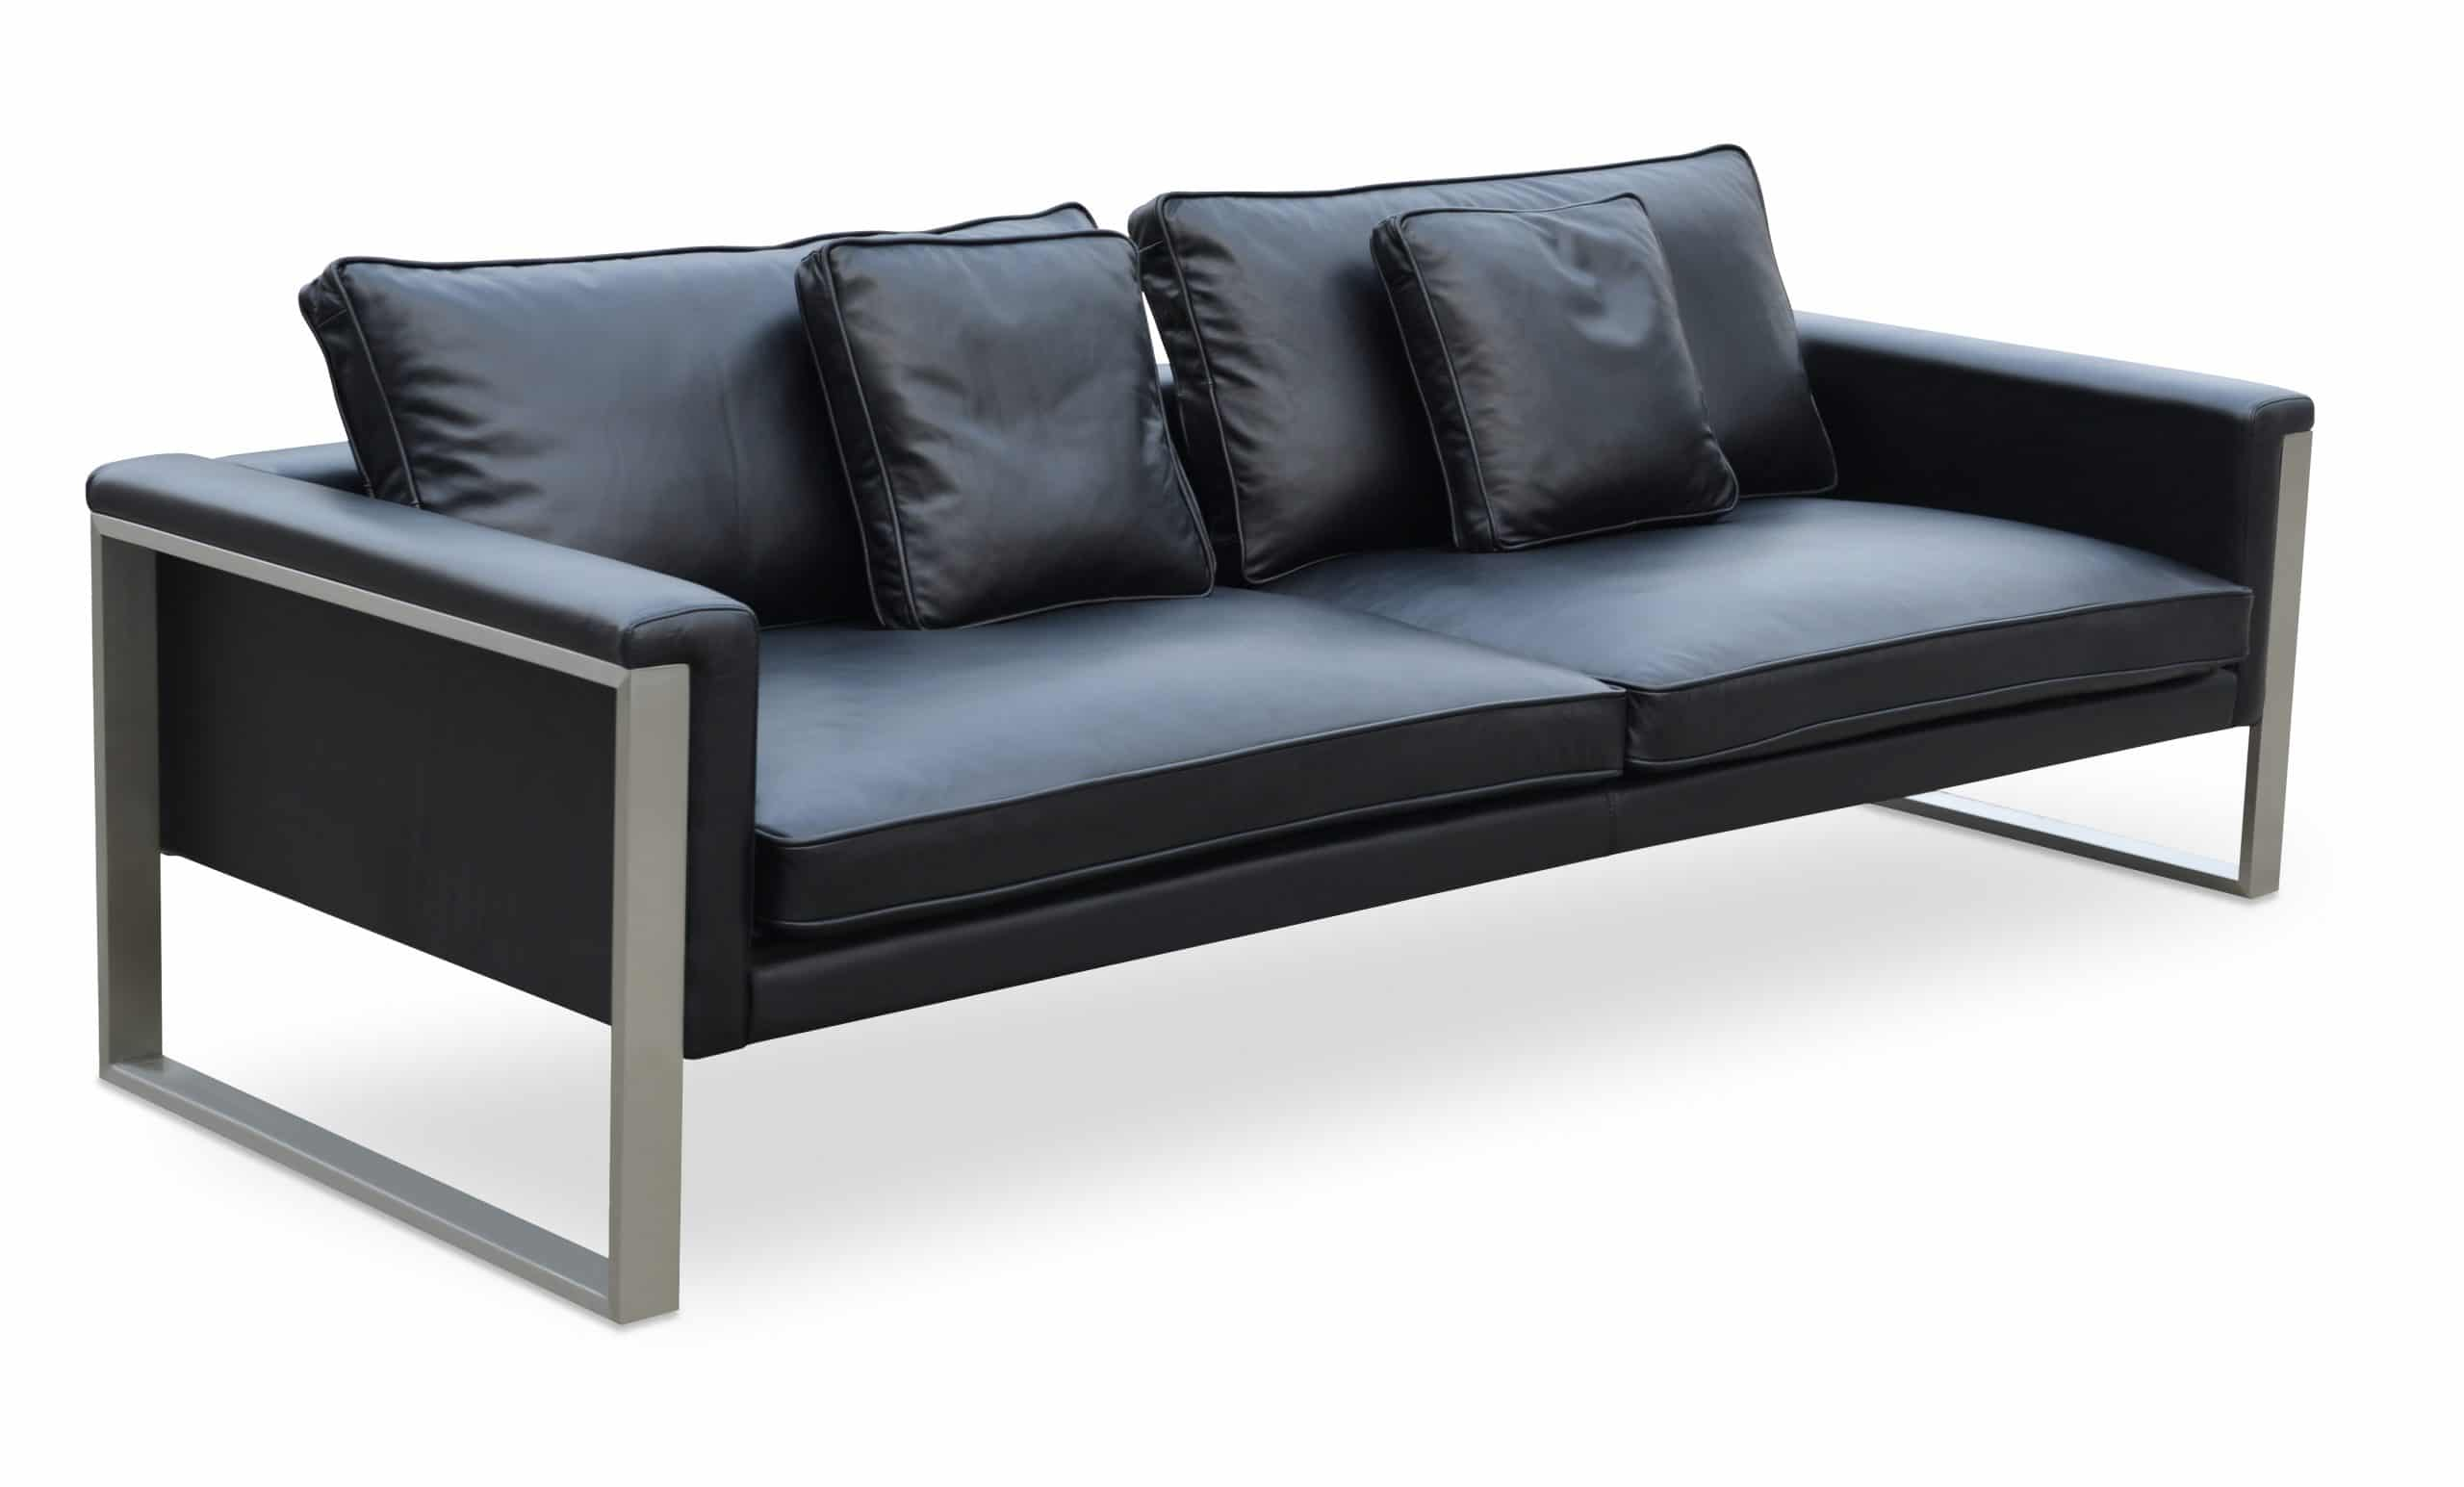 Boston Sofa | D3 Home Modern Furniture San Diego Little Italy